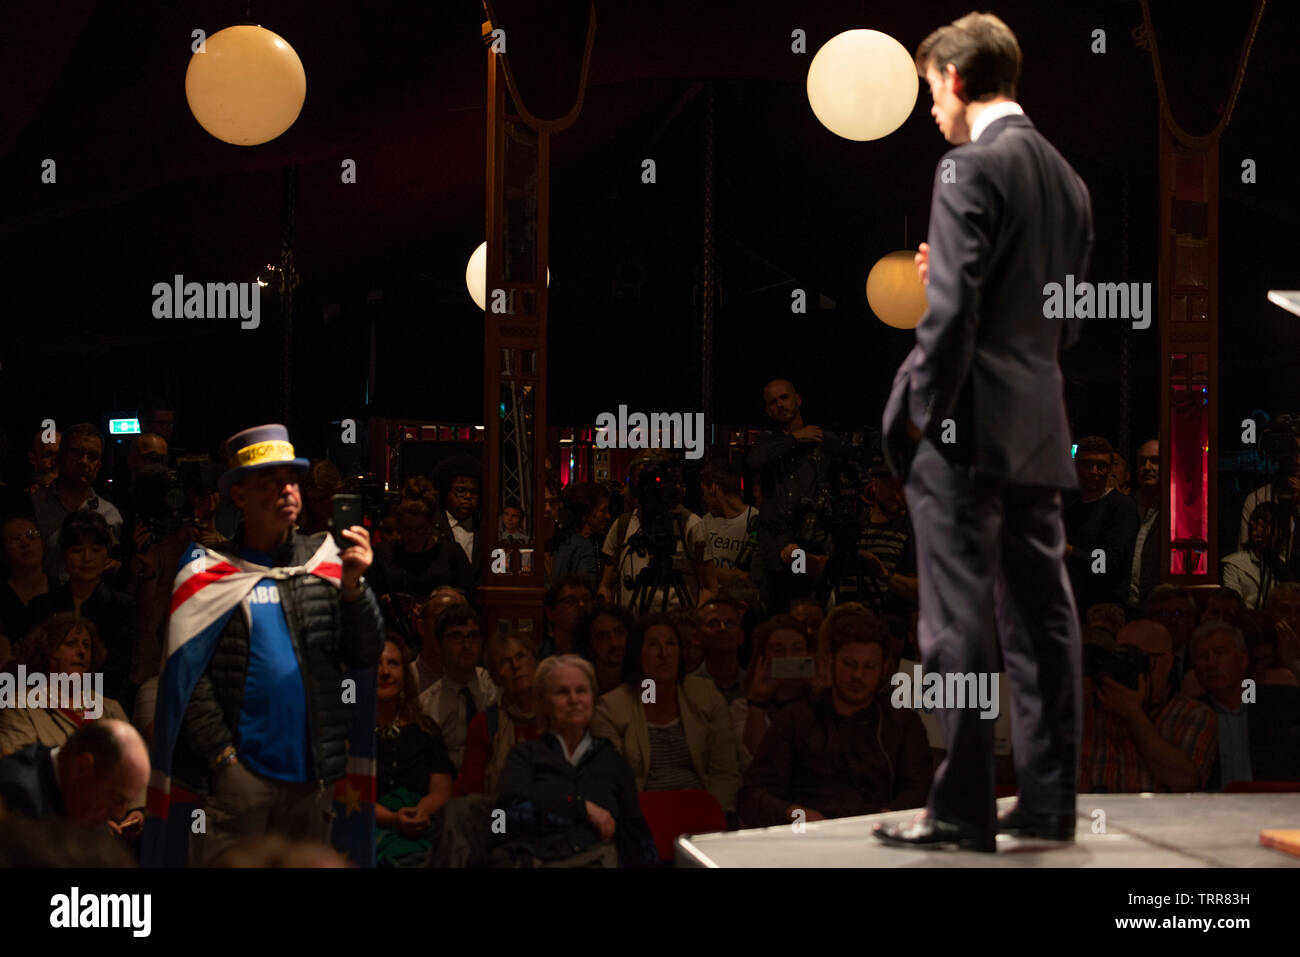 London, UK. 11th June, 2019. Steve Bray of protest group Sodem who are calling for Article 50 to be revoked asks a question. Rory Stewart MP formally launches his bid to become the new leader of the Conservative Party and Prime Minister of the United Kingdom. Credit: Claire Doherty/Alamy Live News Stock Photo